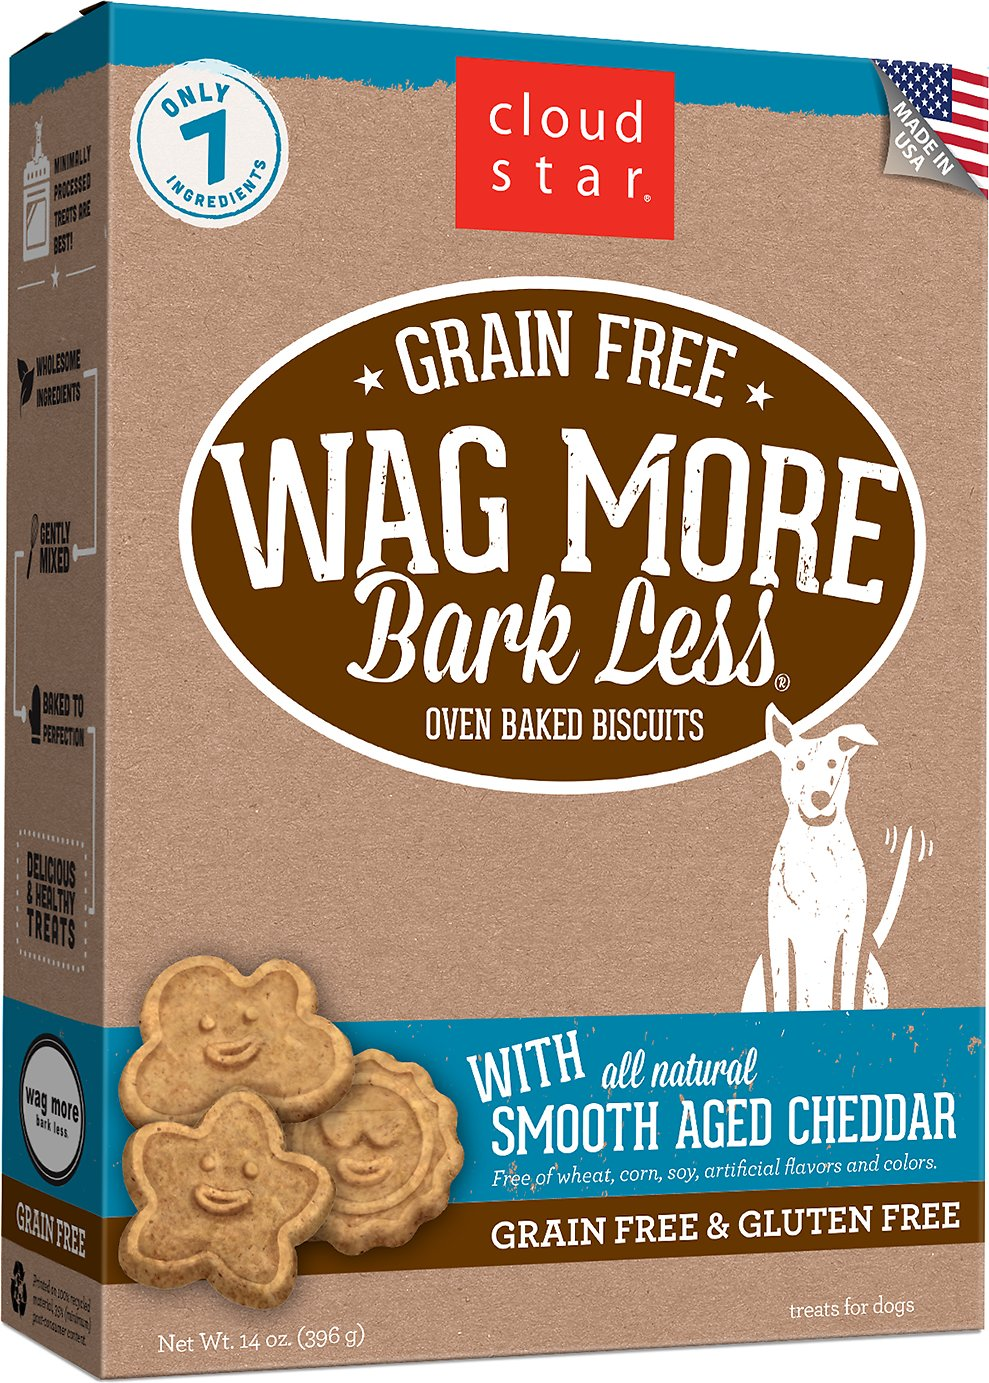 Cloud Star Wag More Bark Less Grain-Free Oven Baked with Smooth Aged Cheddar Dog Treats, 14-oz box (Weights: 14 ounces) Image